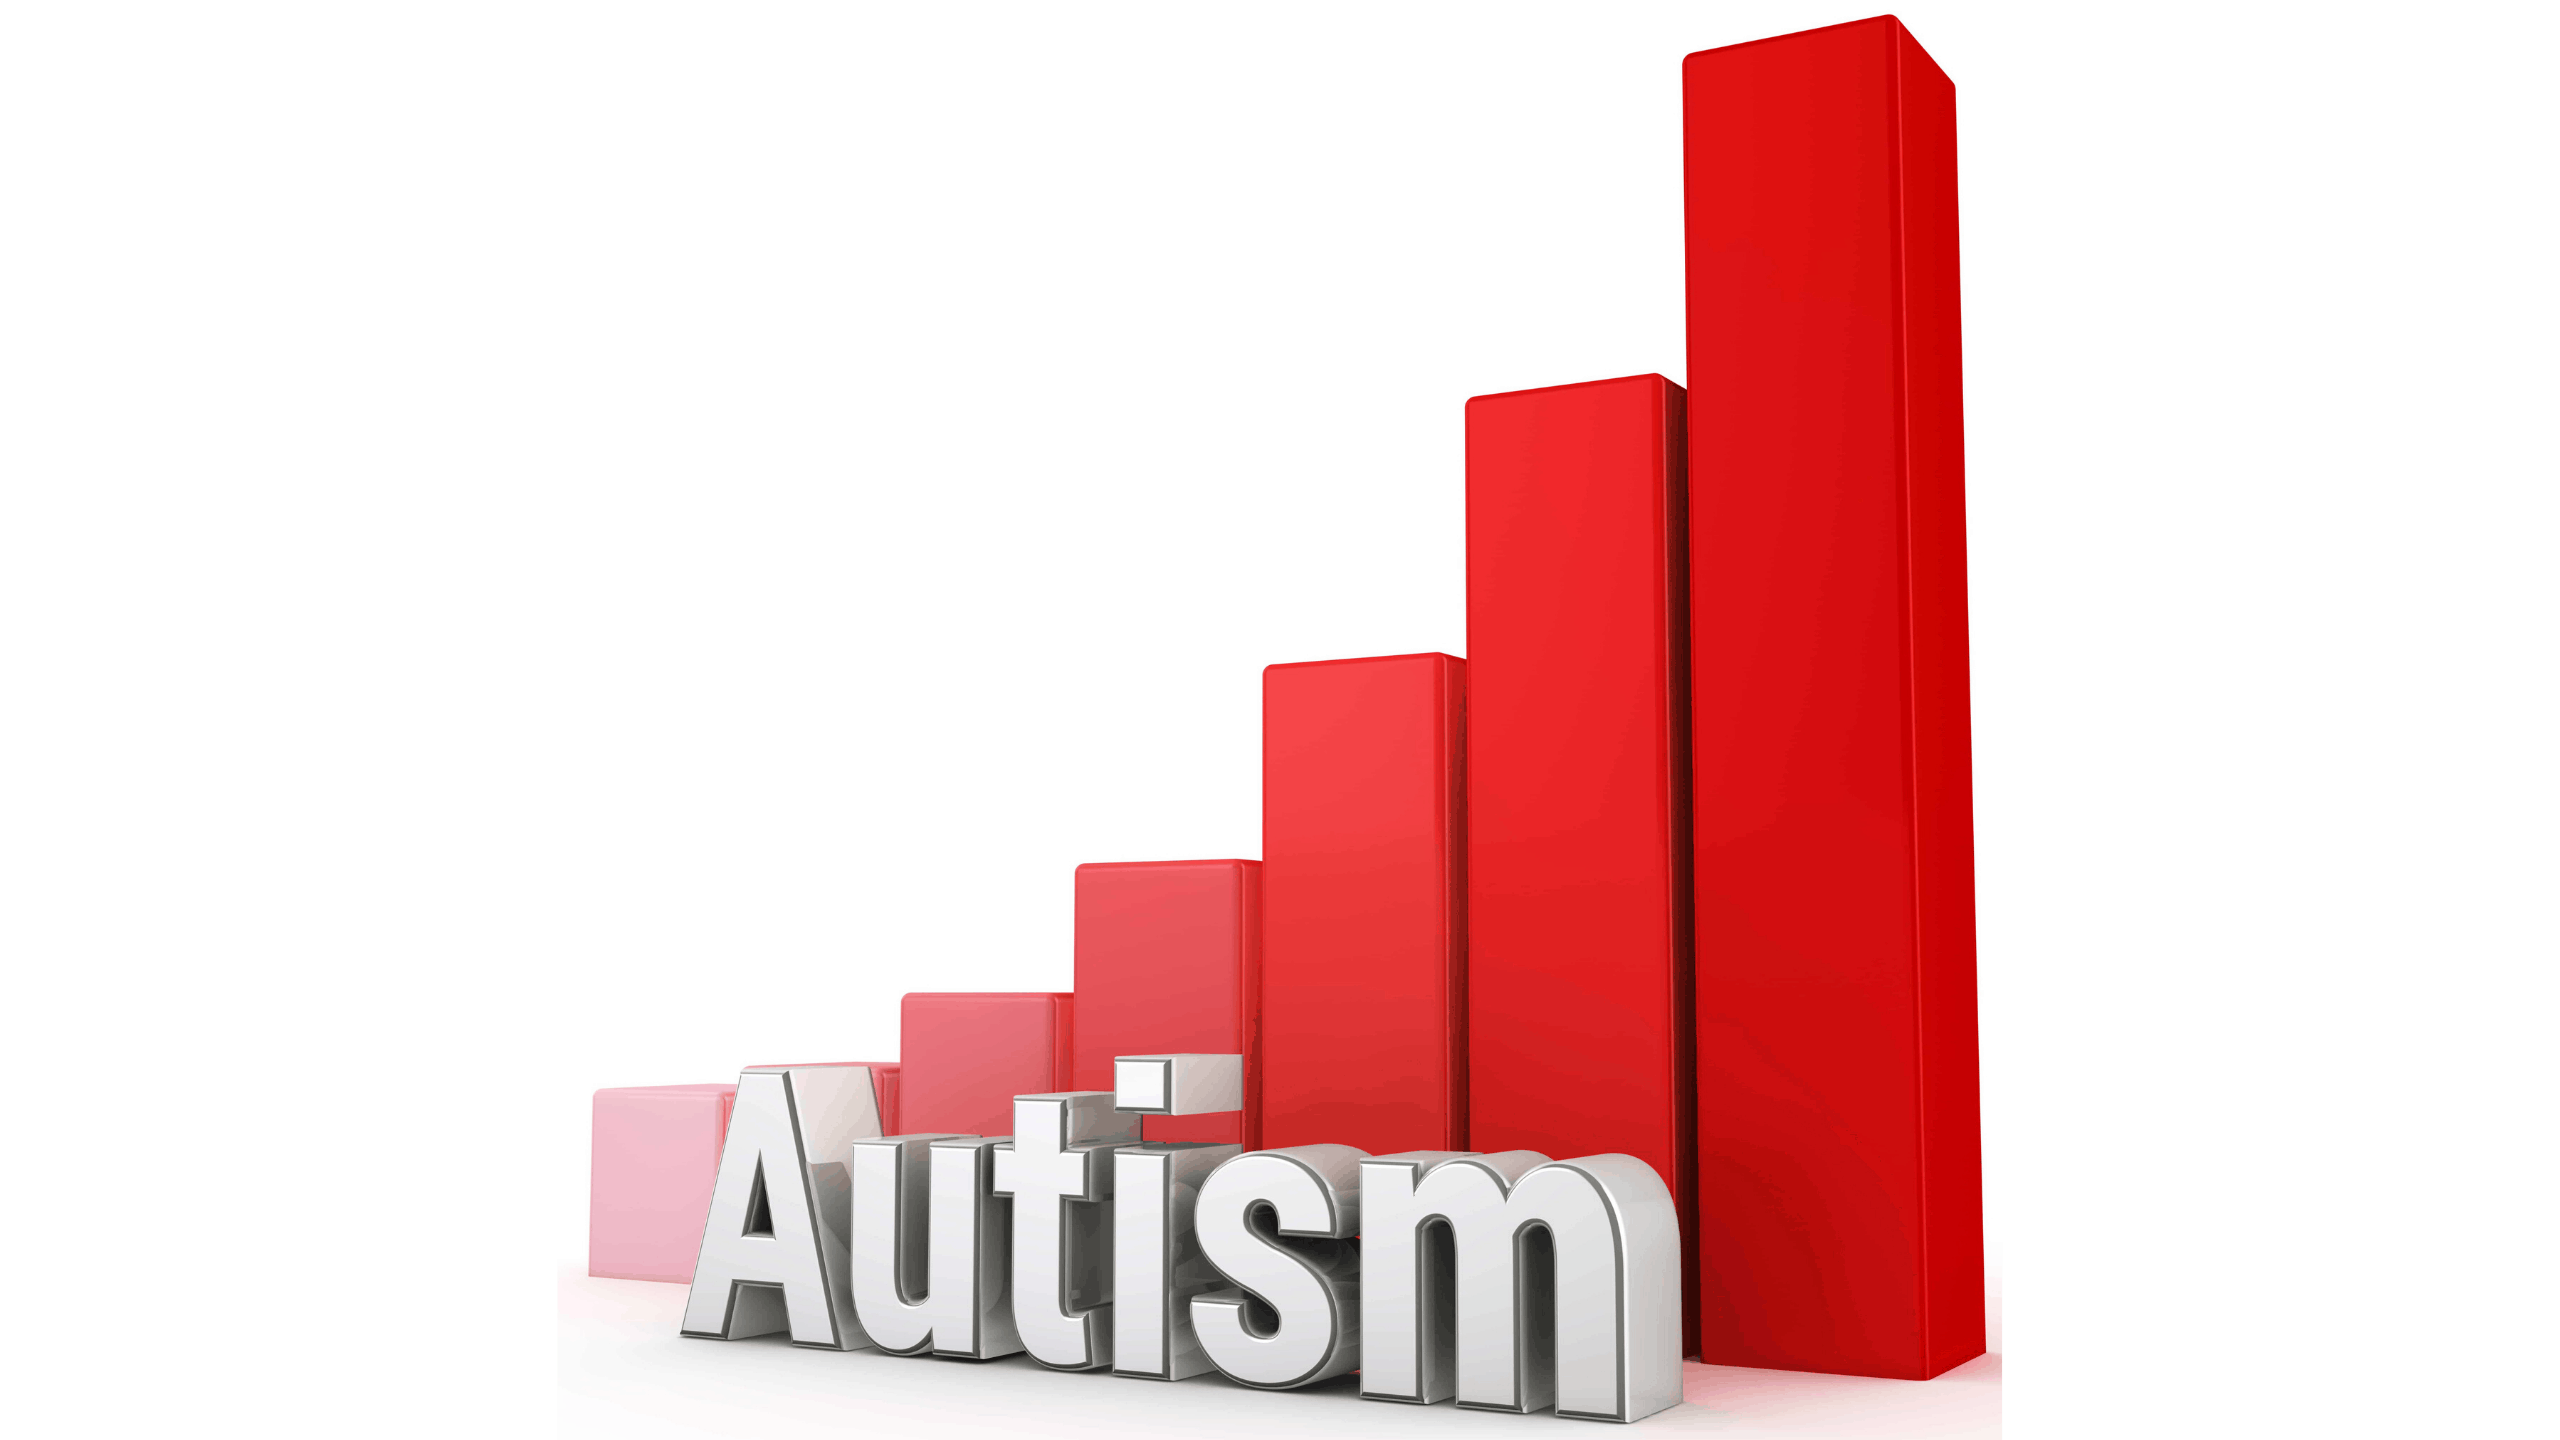 autism rate, 1 in 59, autism prevalence